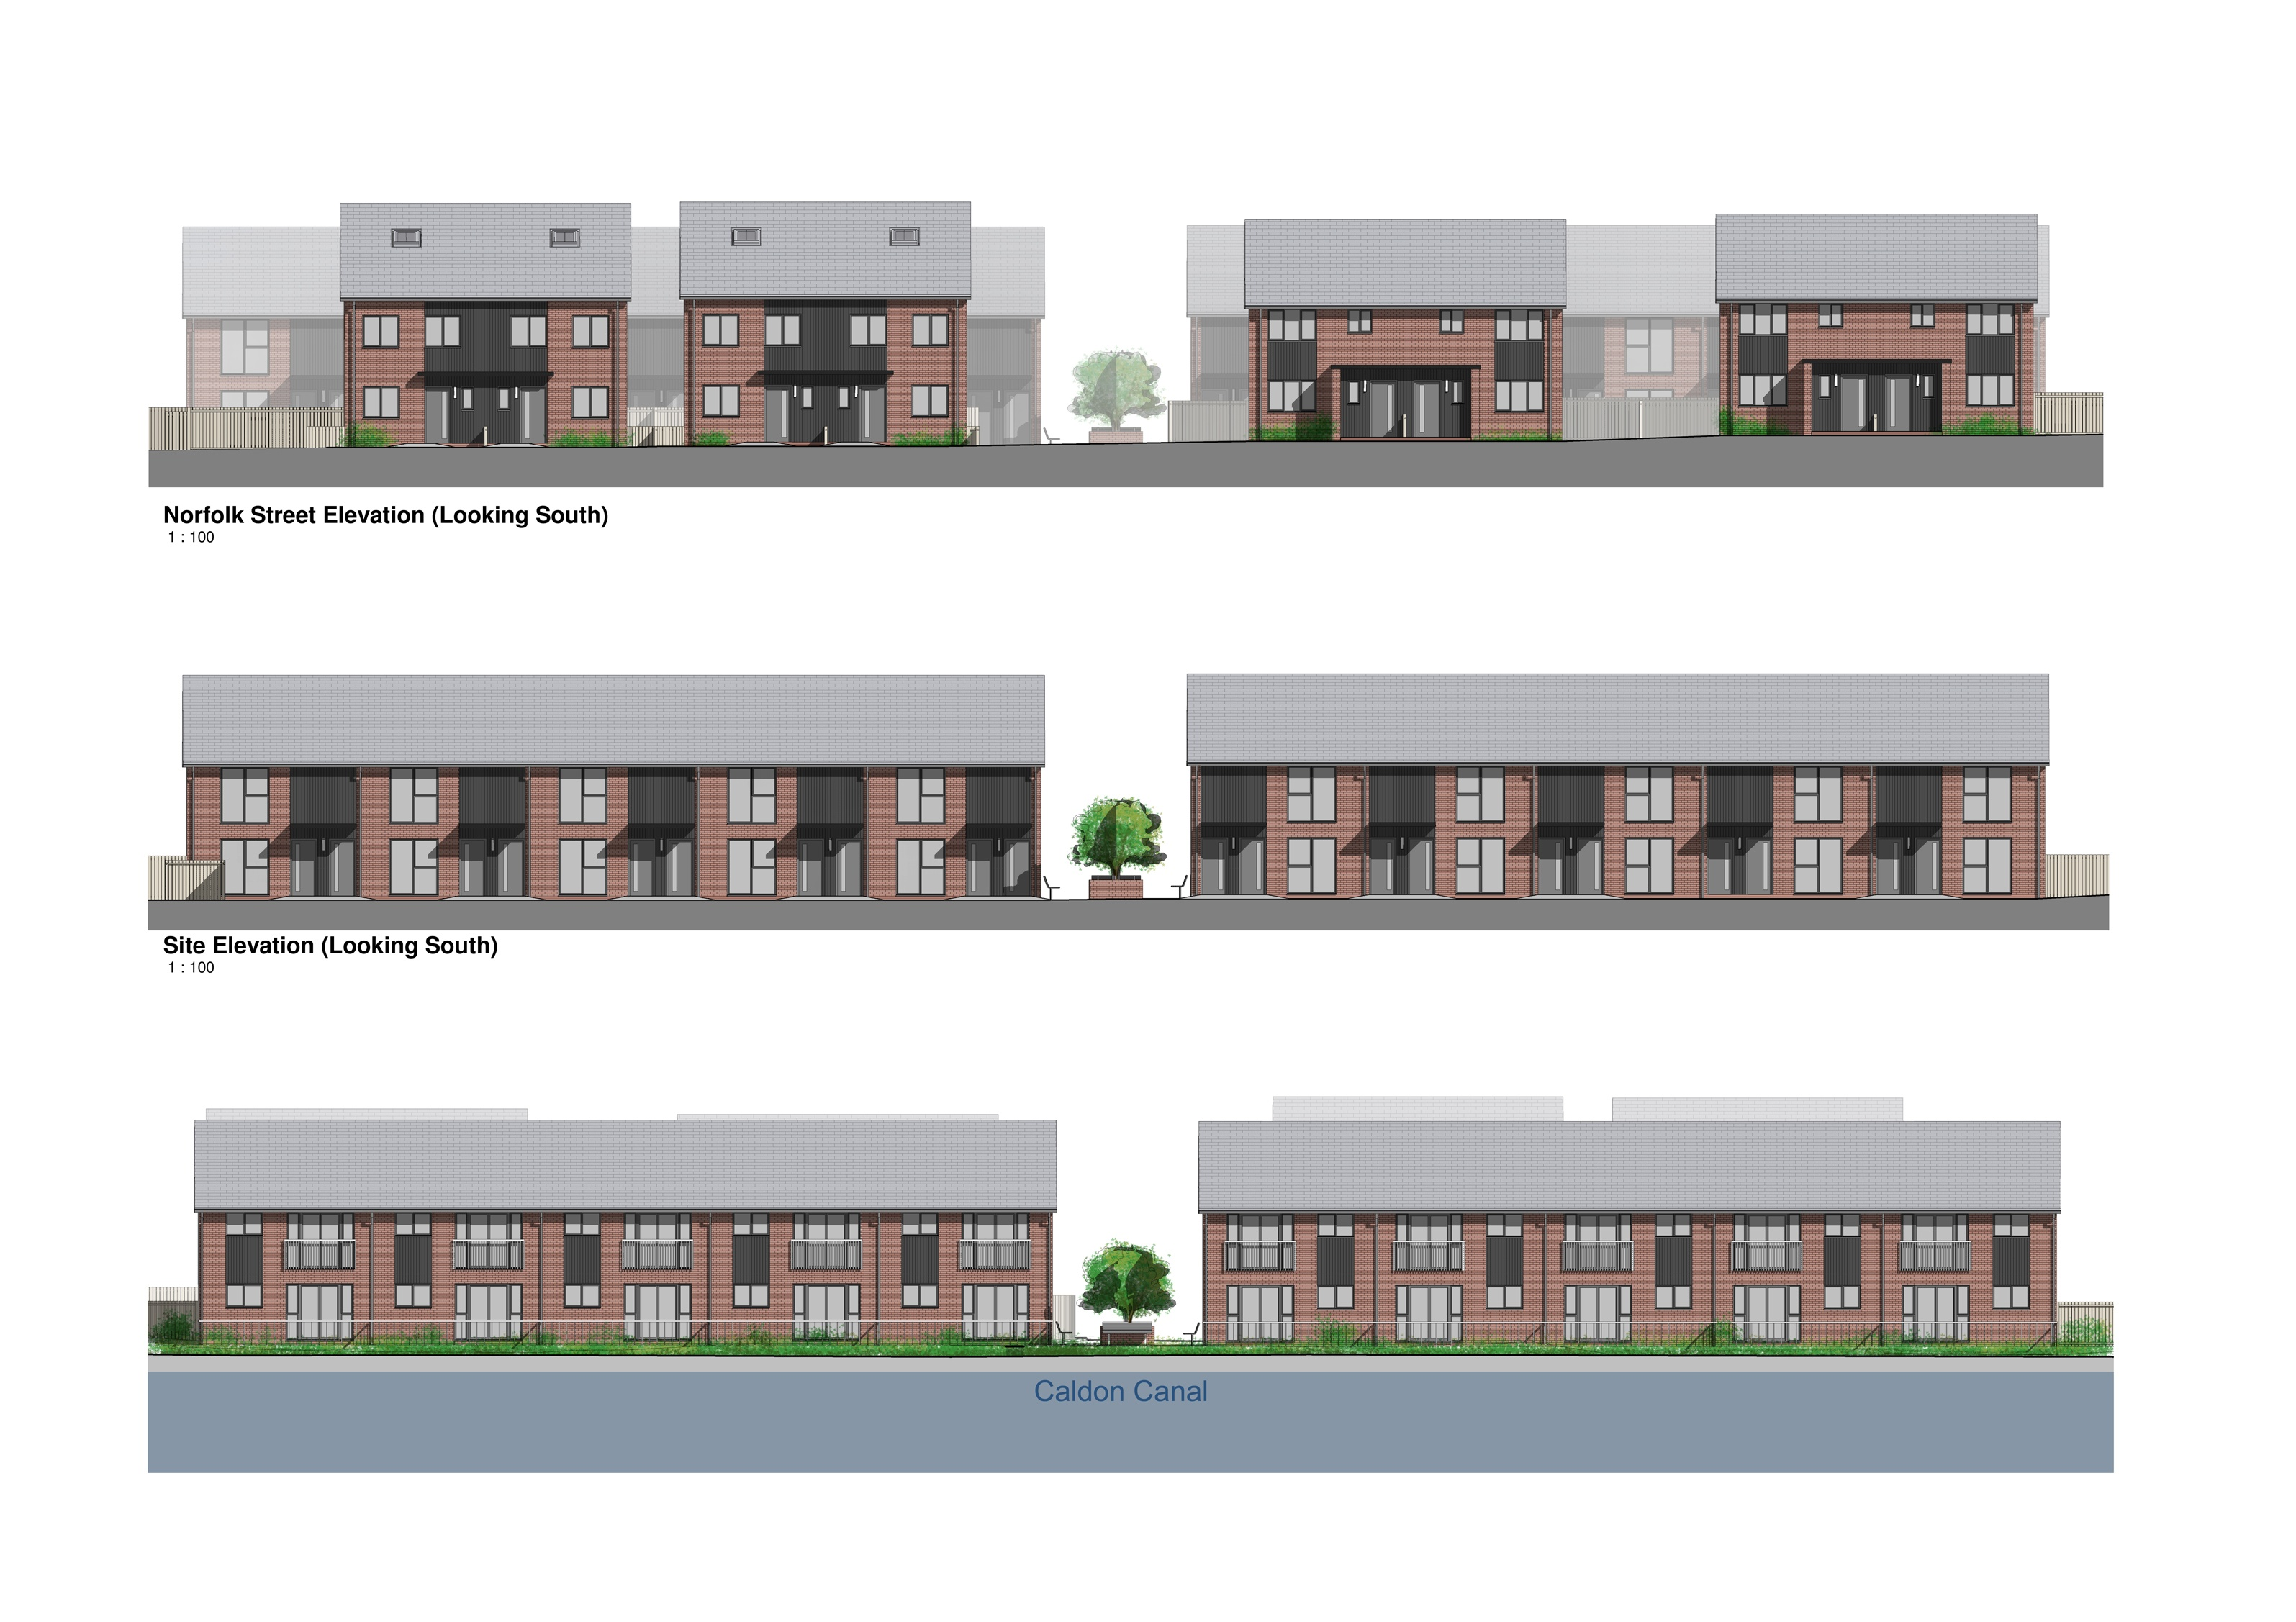 Croft Architecture Affordable Homes for Stoke On Trent City Council Norfolk Street